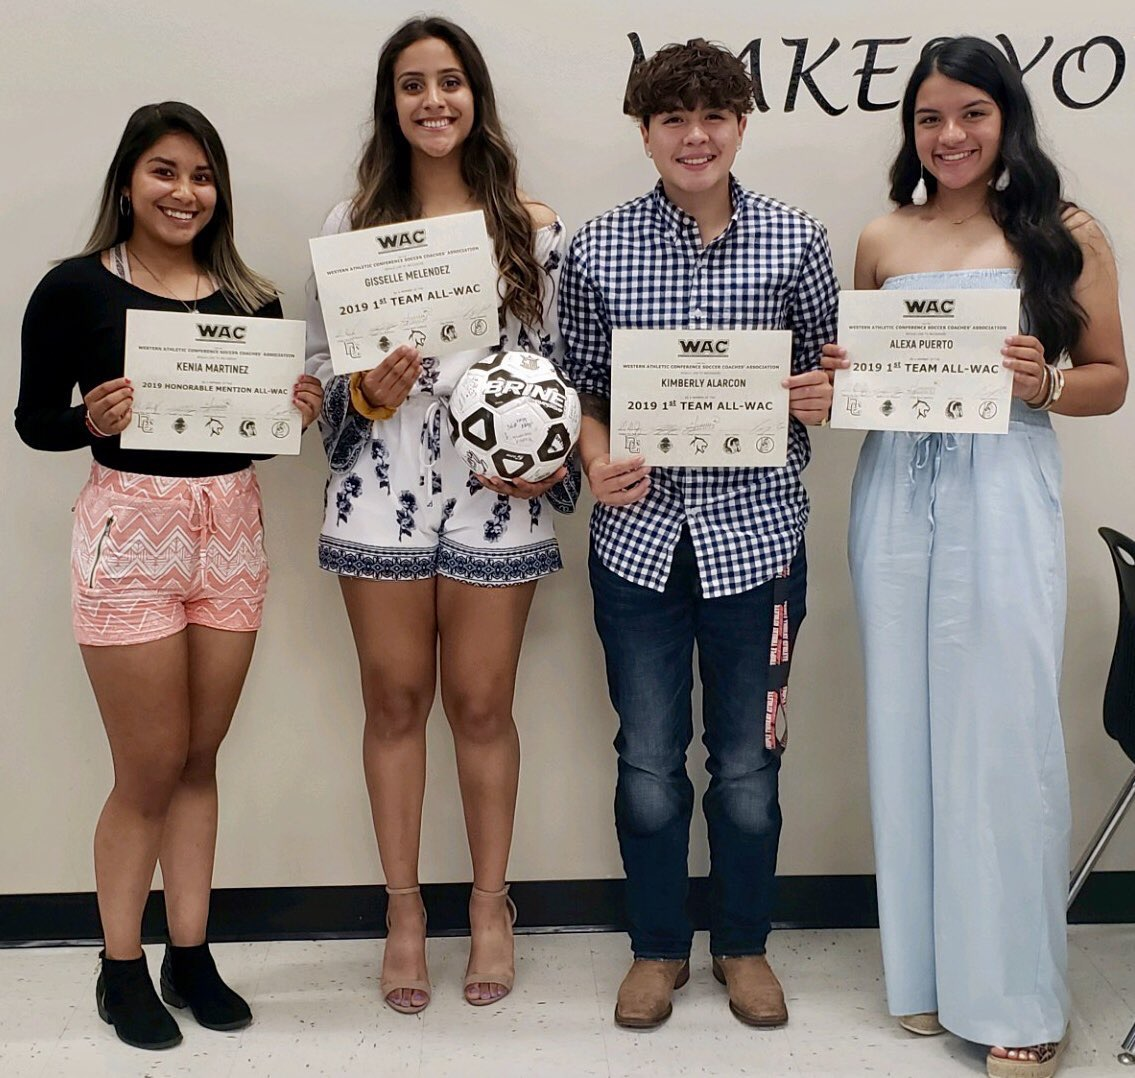 Alarcon, Melendez, and Puerto are 1st Team All WAC